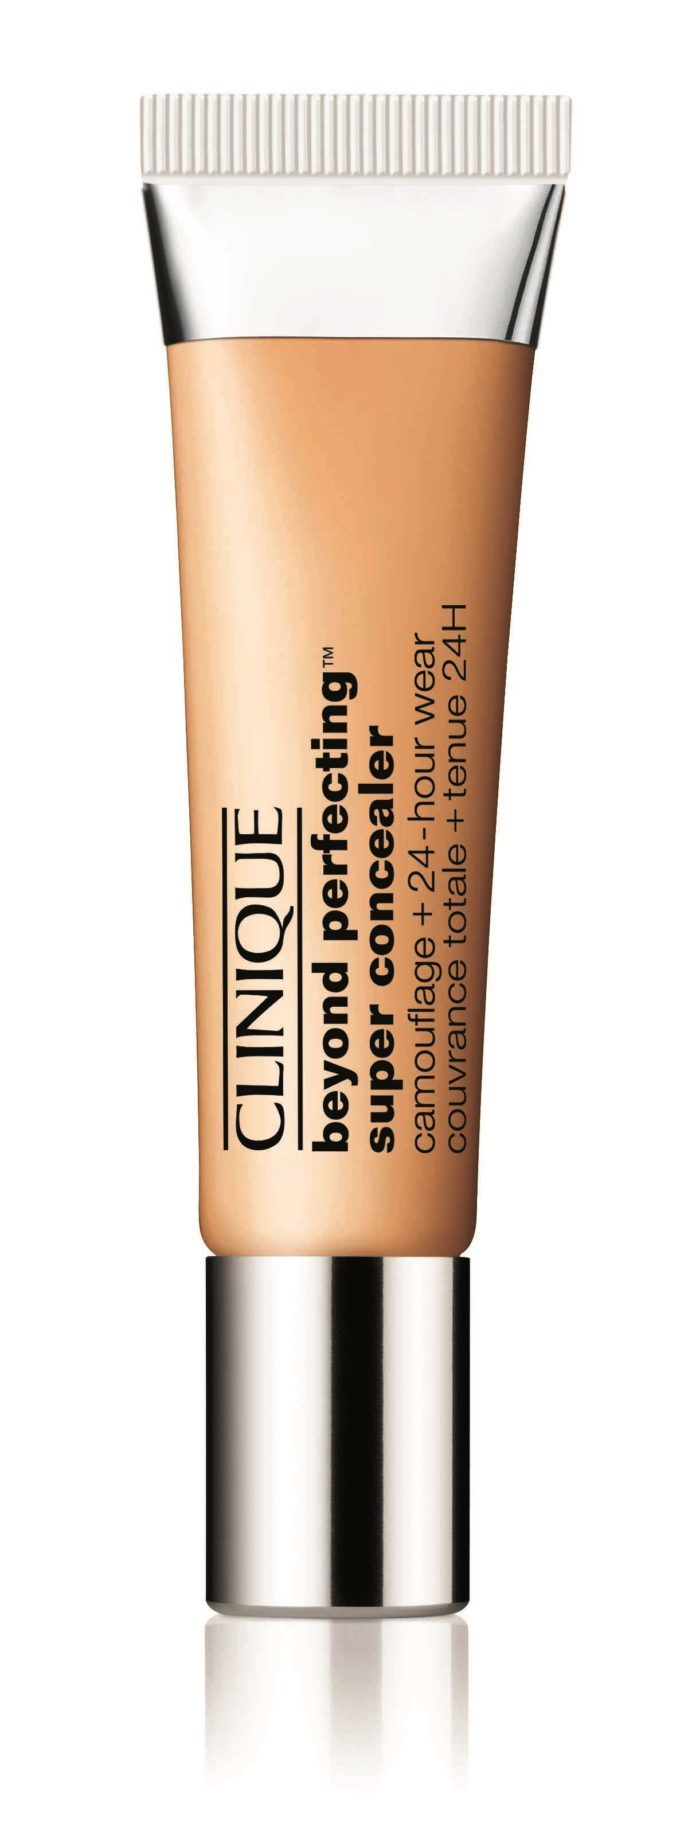 Clinique: nuovo Beyond Perfecting Super Concealer Camouflage + 24-Hour Wear